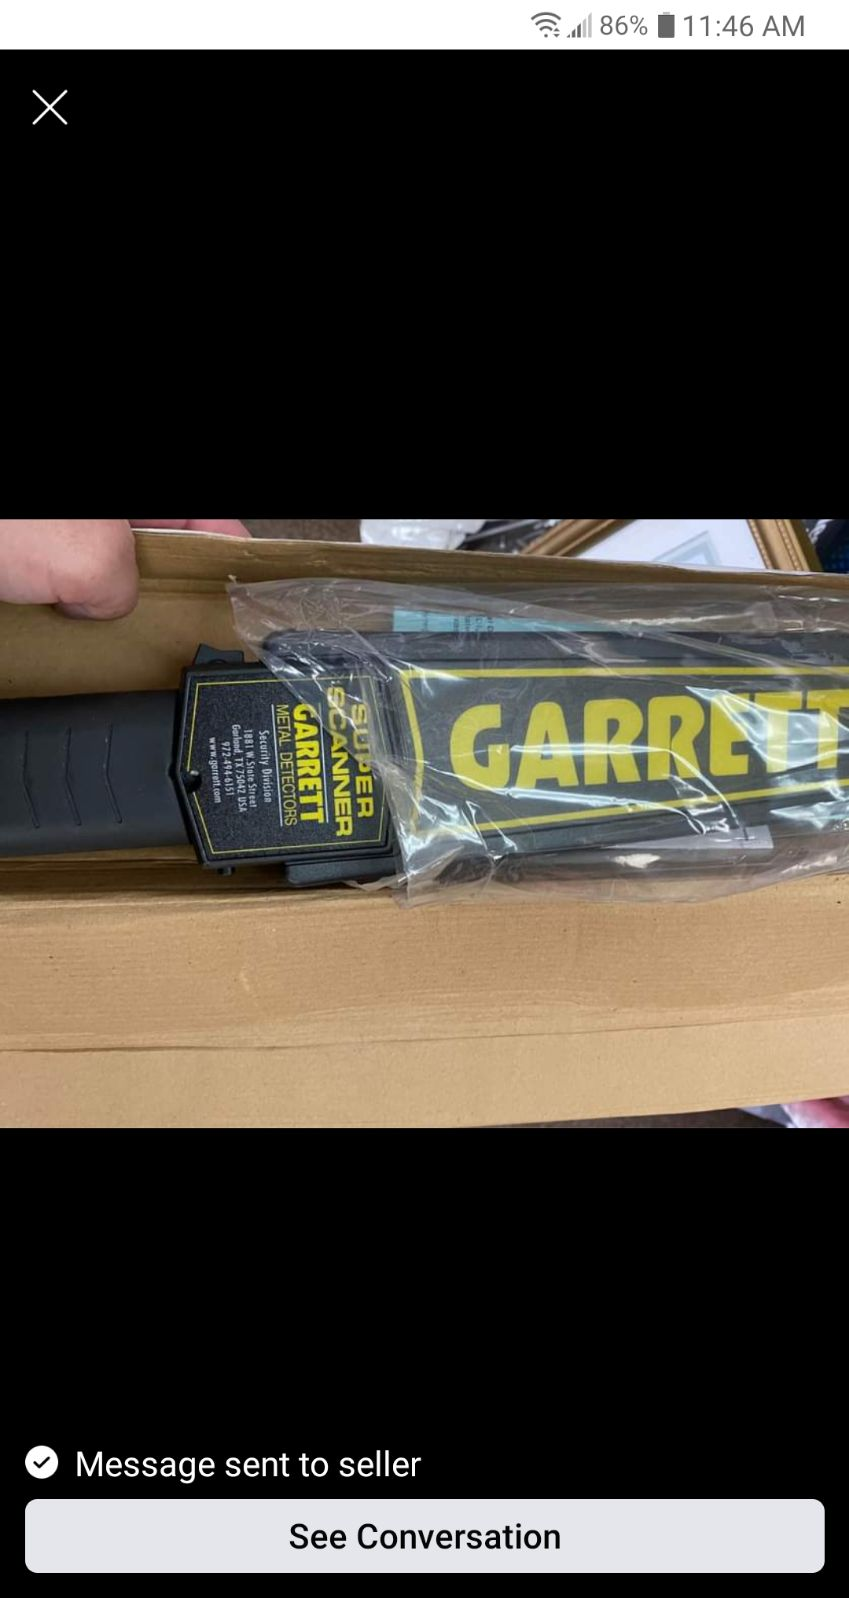 Garrett Super scanner handheld